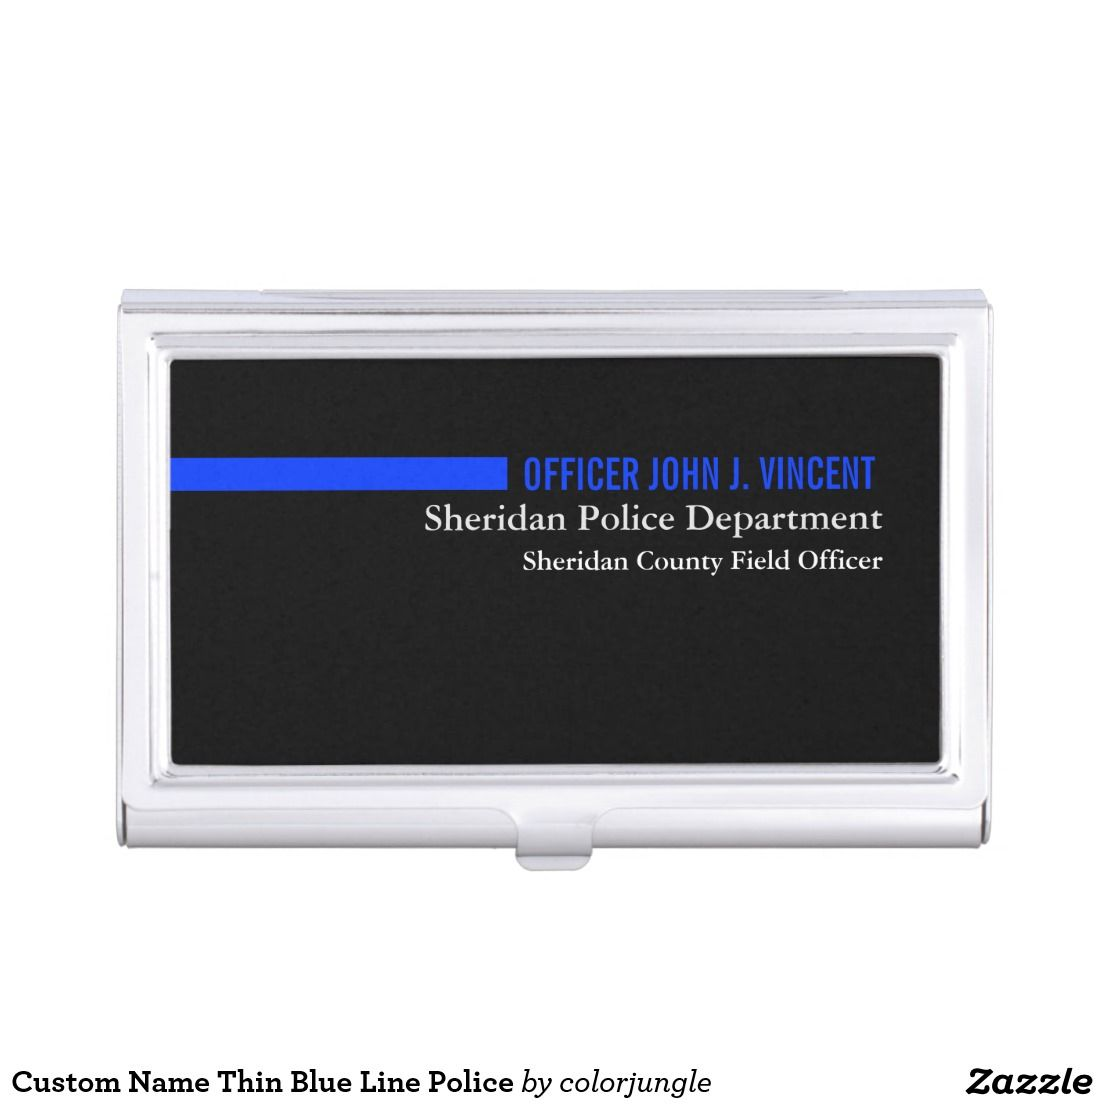 Custom Name Thin Blue Line Police Business Card Holder | Pinterest ...